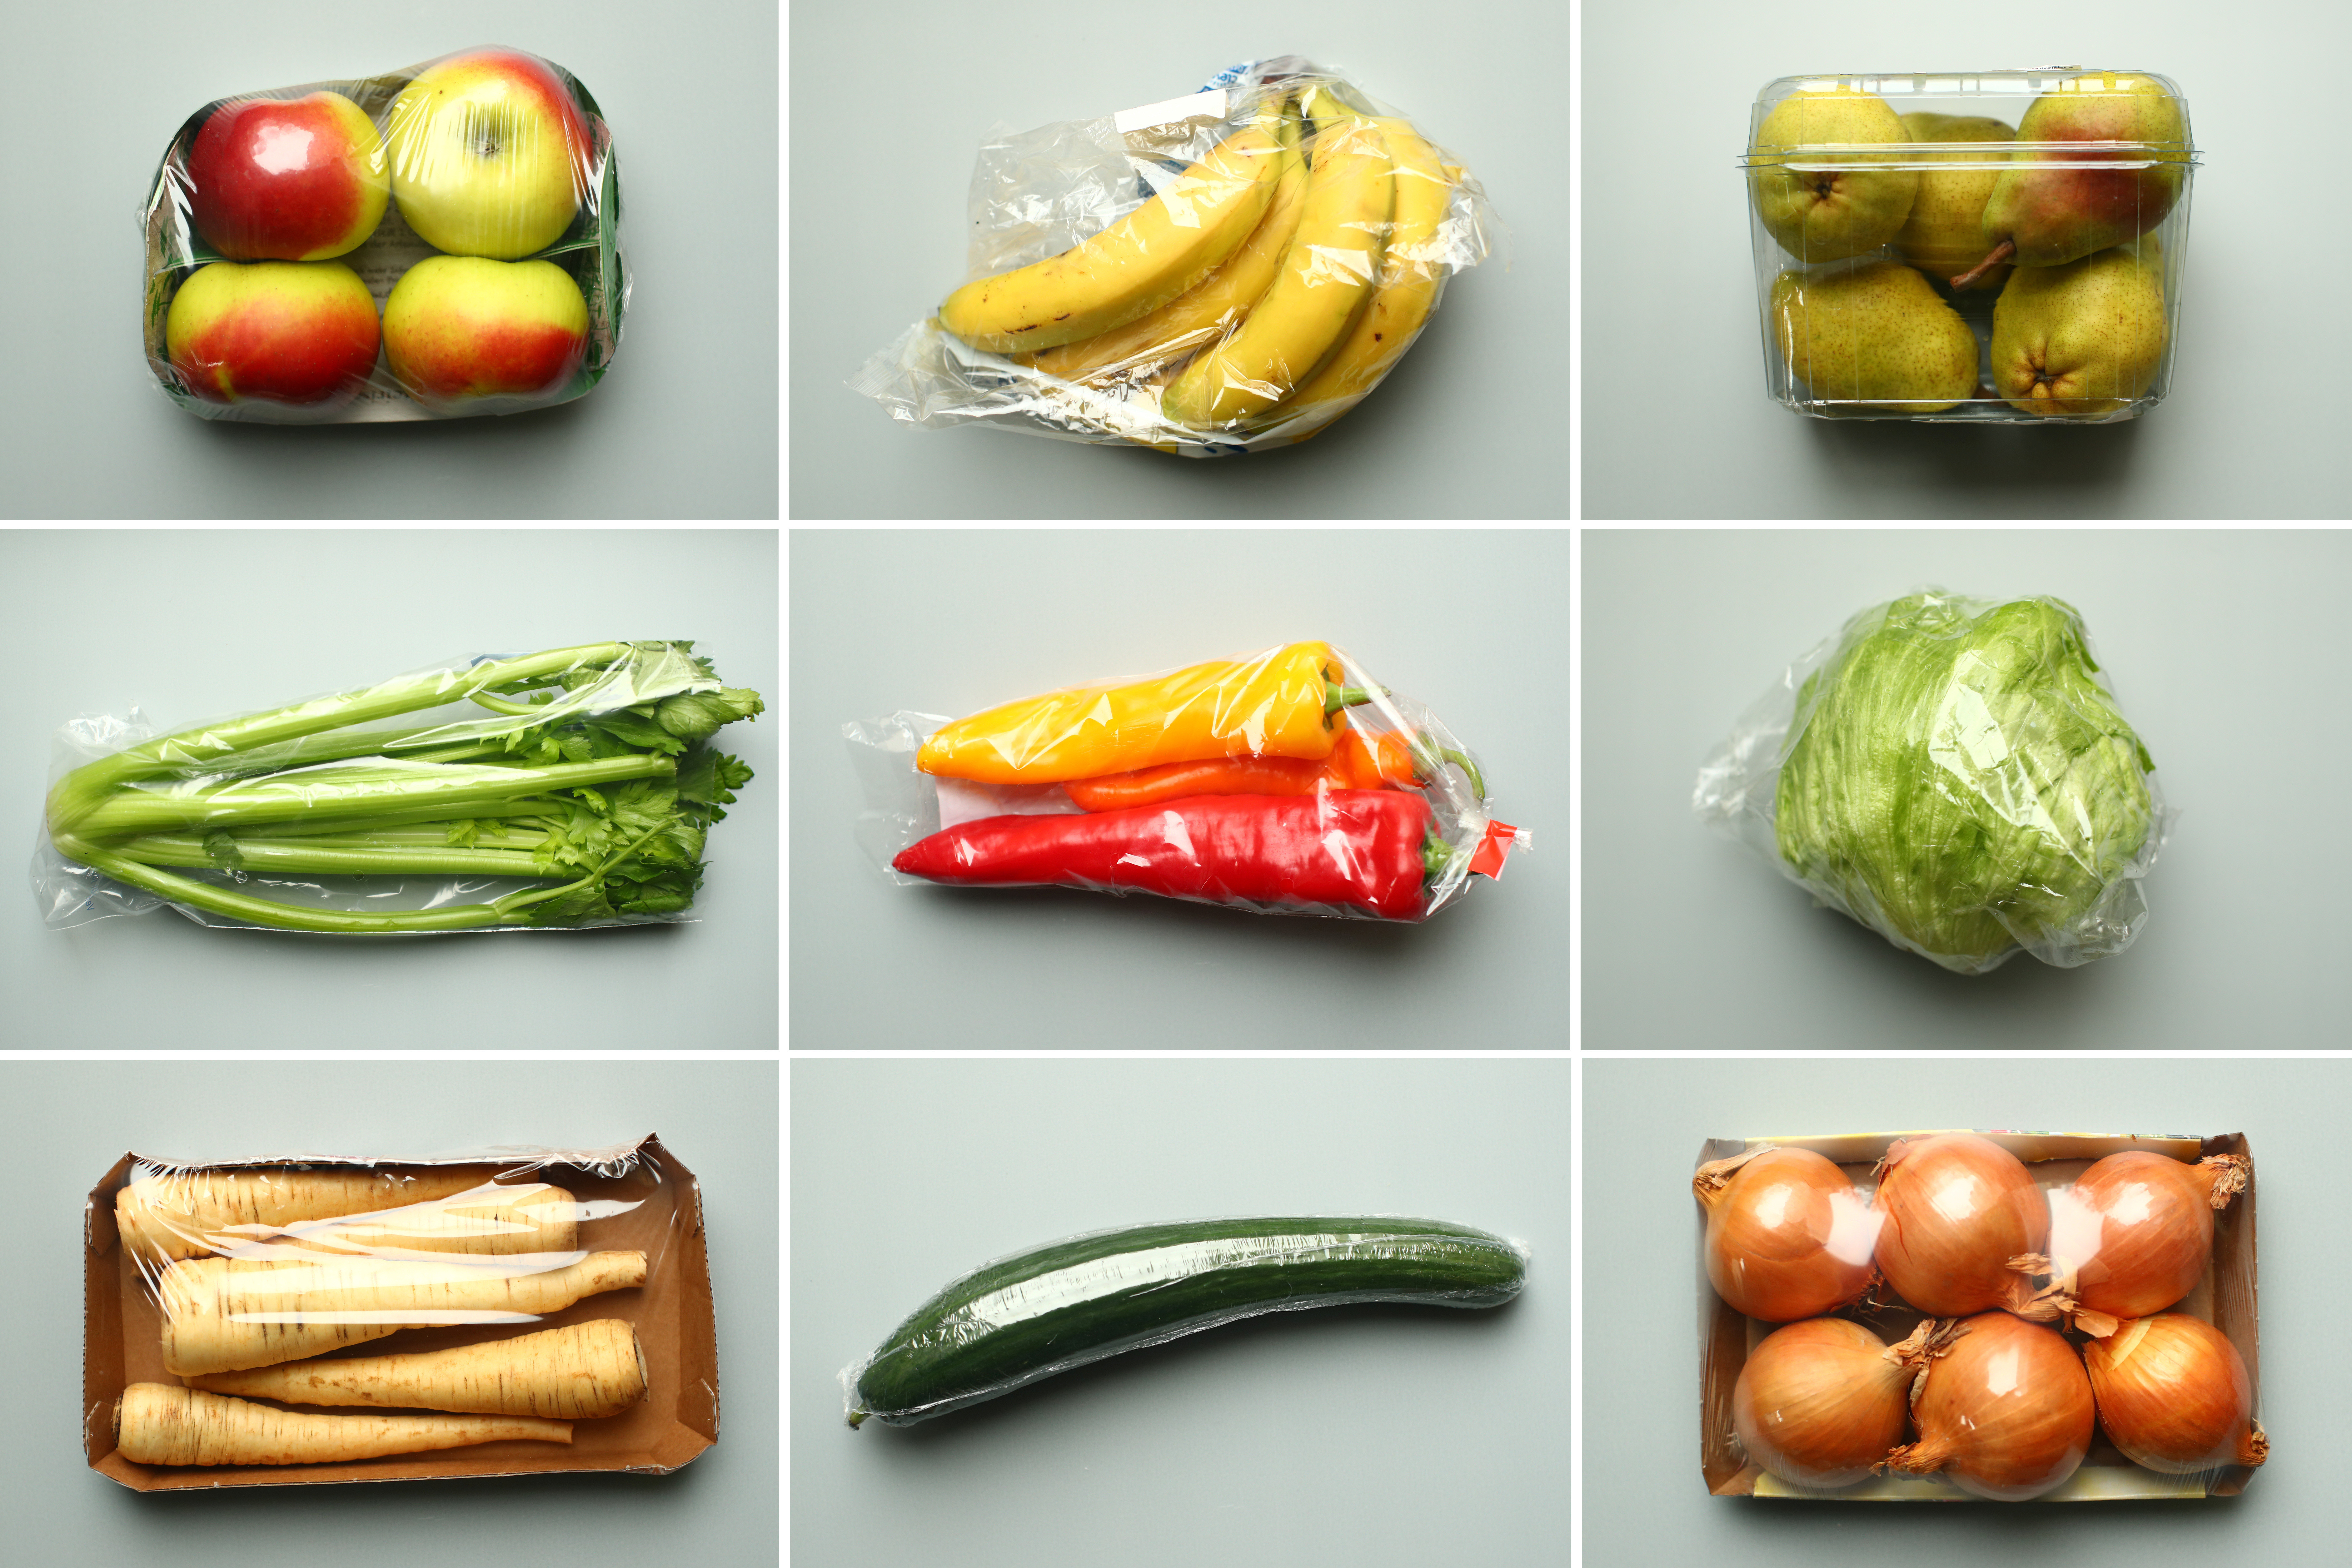 a combination of illustrations shows apples, bananas, pears, celery, peppers, a head of lettuce, parsnips, a cucumber and onions, wrapped in plastic as bought in a supermarket, taken November 20, 2018. REUTERS/Lisi Niesner/Illustration - RC1AAD6CCE00